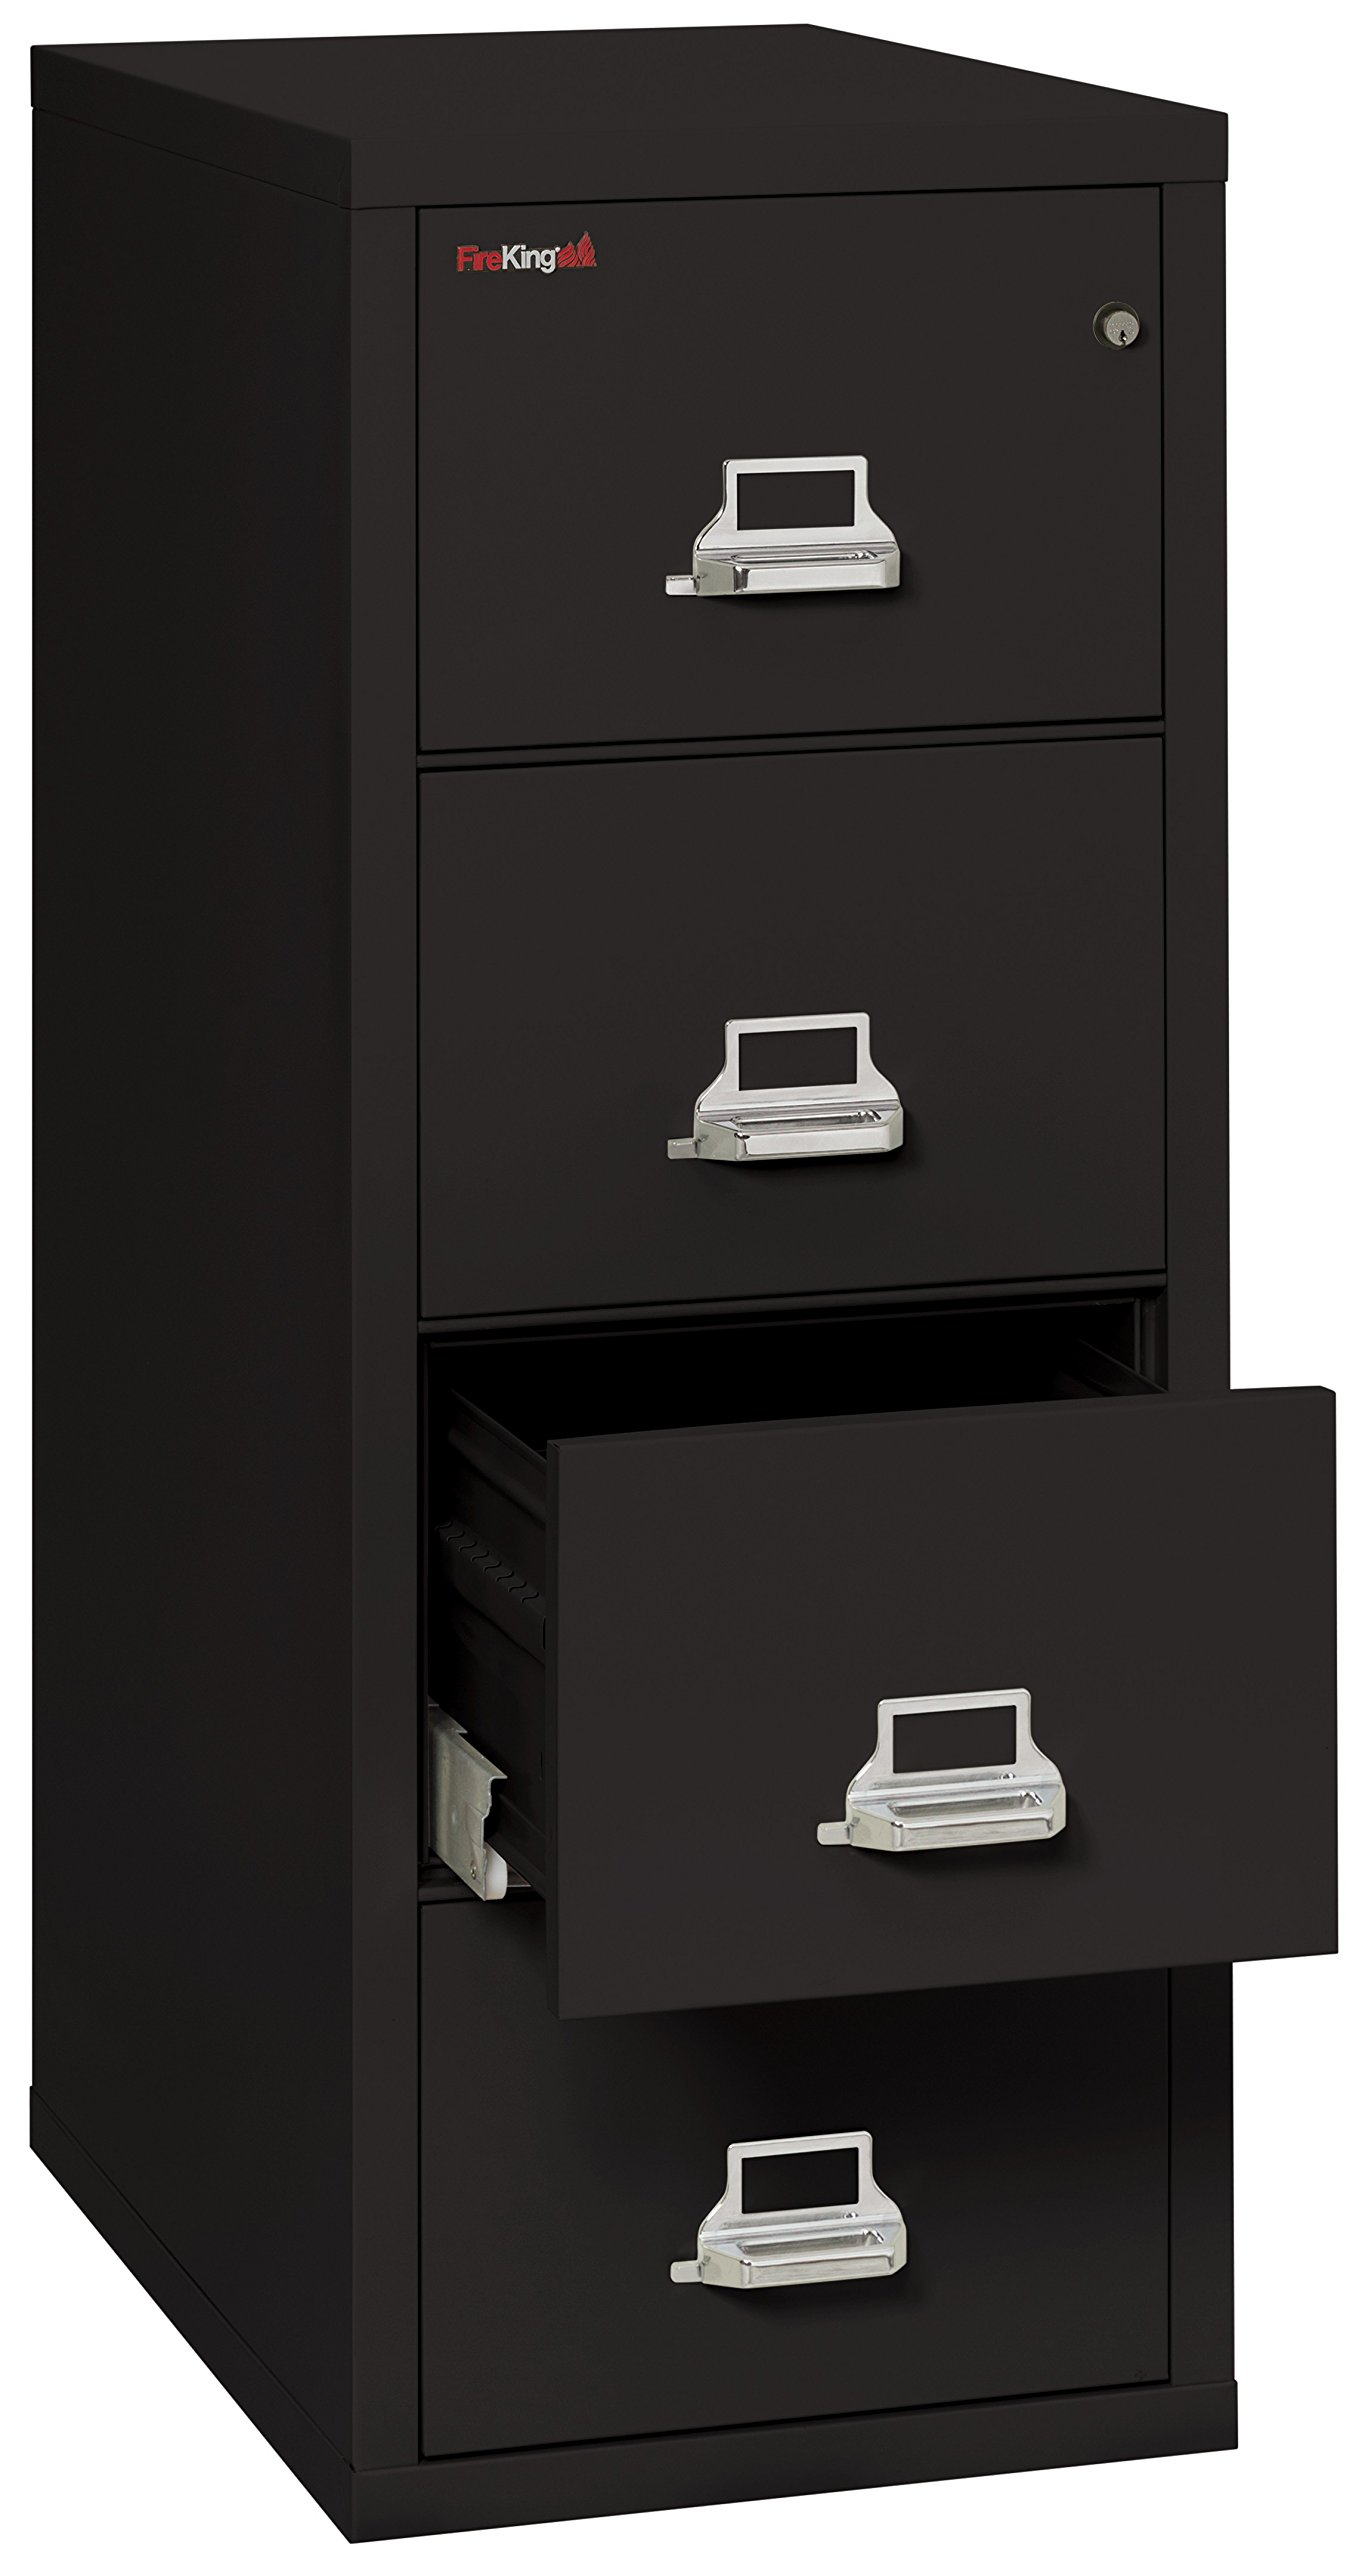 Black 1 hour Fire Impact rated Vertical cabinet 4 Drawer Legal 31 1/2 depth Made in USA by Fire King Security Group (Image #2)